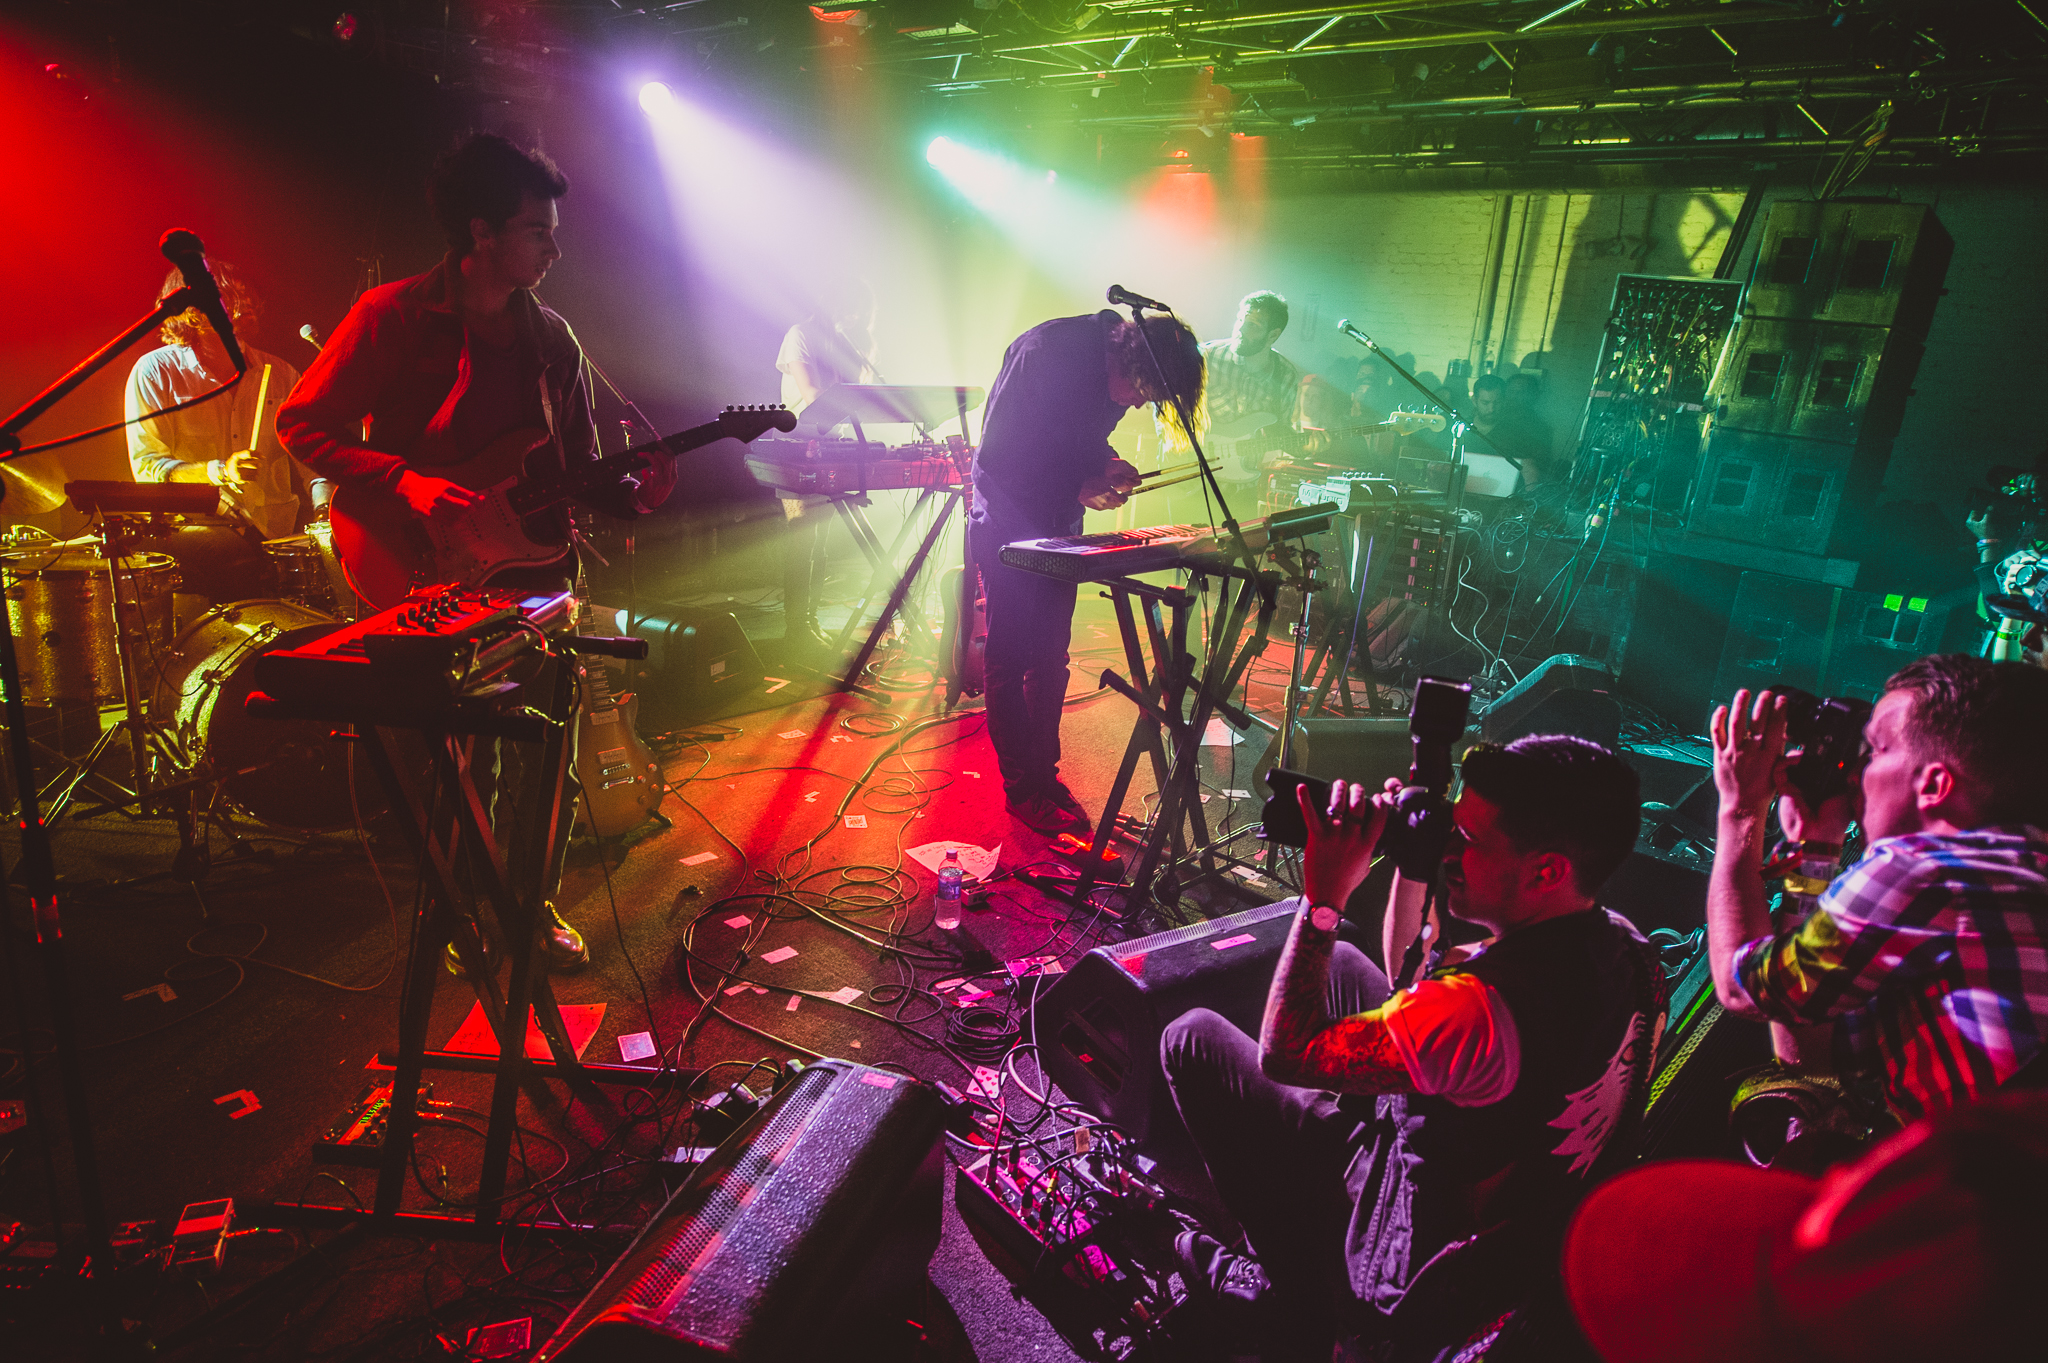 Washed Out performs at the Hype Hotel during SXSW 2014.